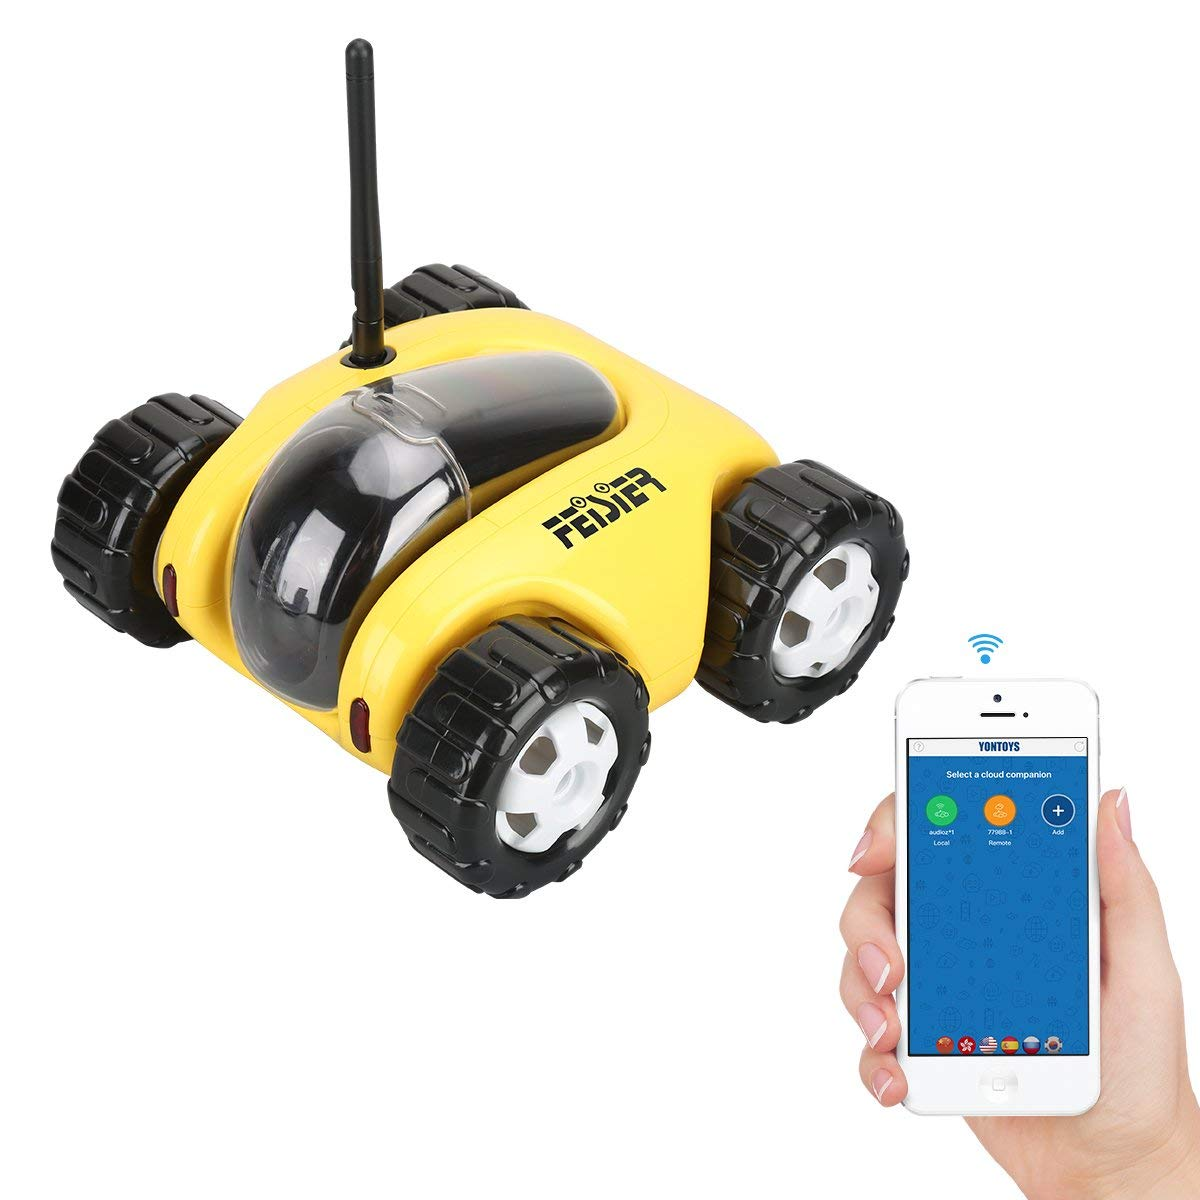 FEISIER Cloud Rover IV Cloud Companion RC Car Wi-Fi P2P Remote Control 1.3MP 720P HD Baby Monitor SPY Tank Car APP Control Movement Motion IP Camera Home Remote Camera with Charging Dock (Yellow)